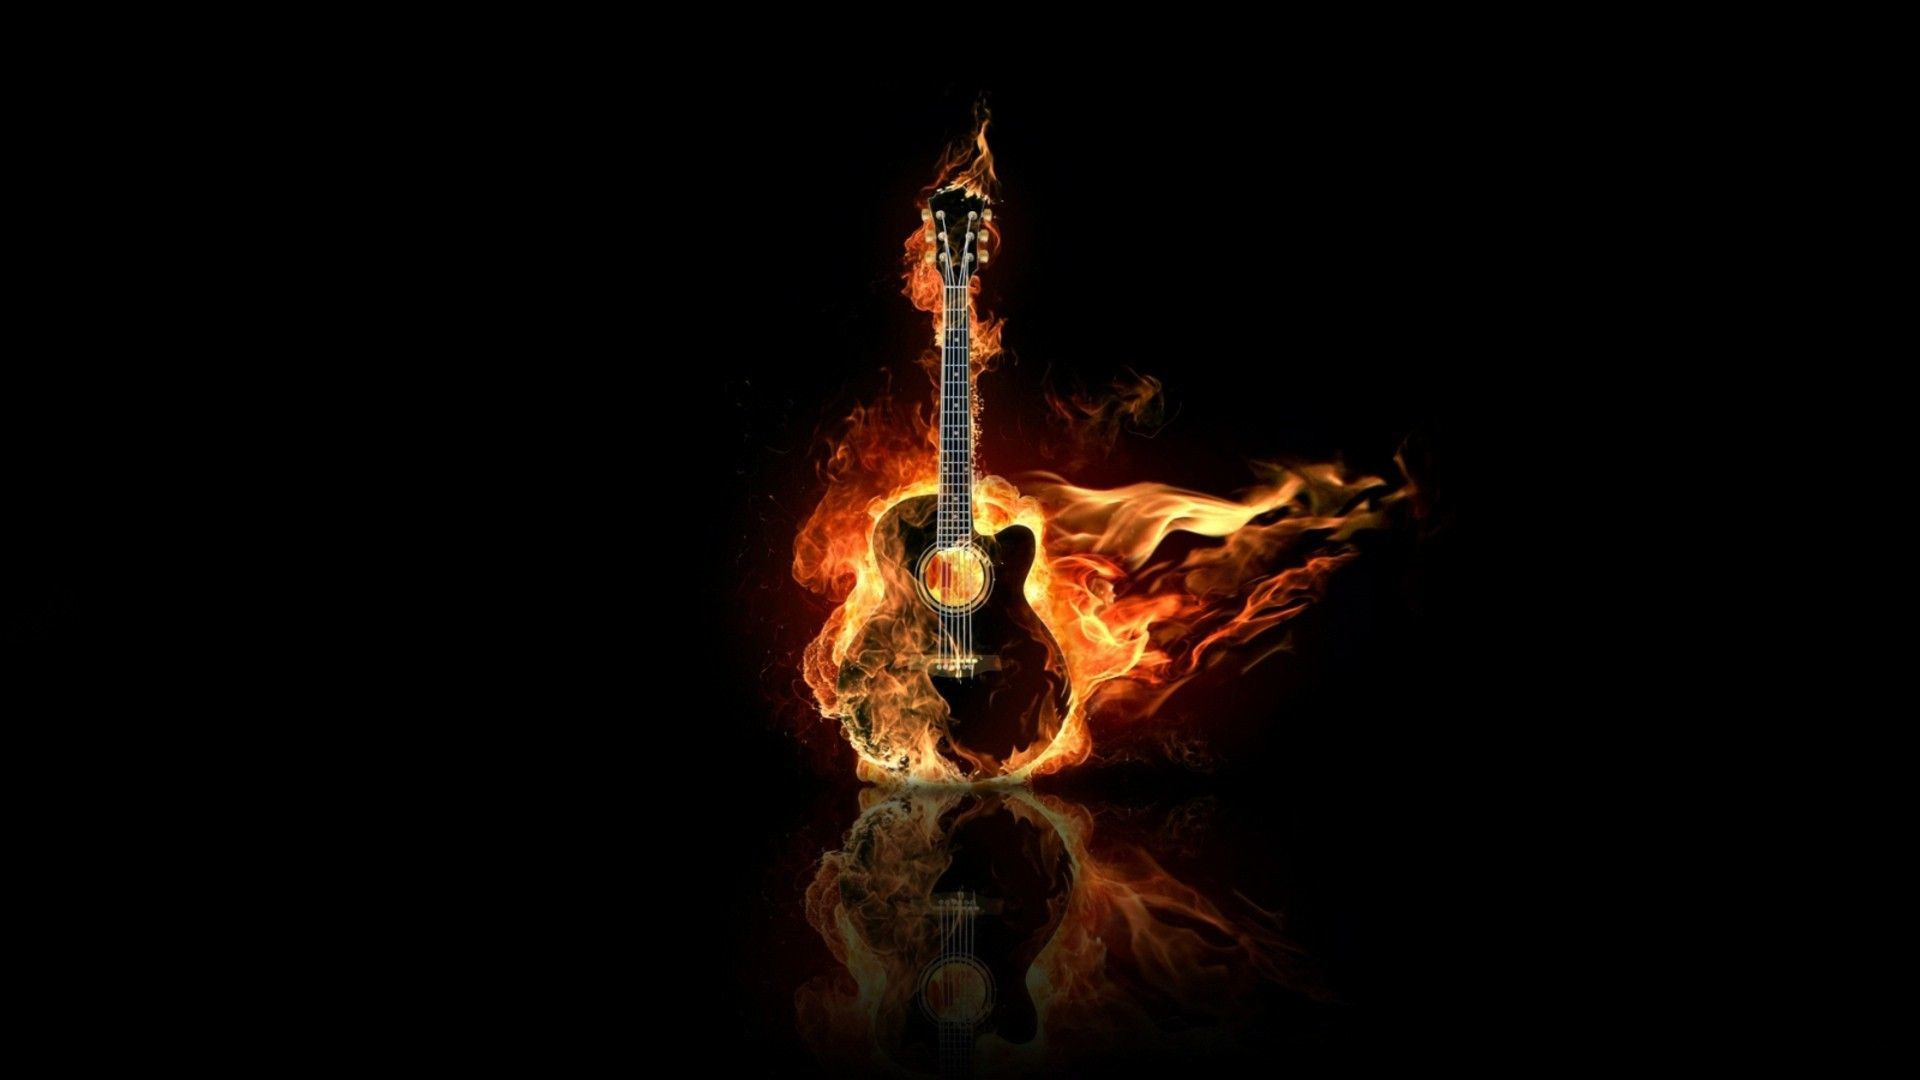 … Country Music High Resolution Wallpaper. Download